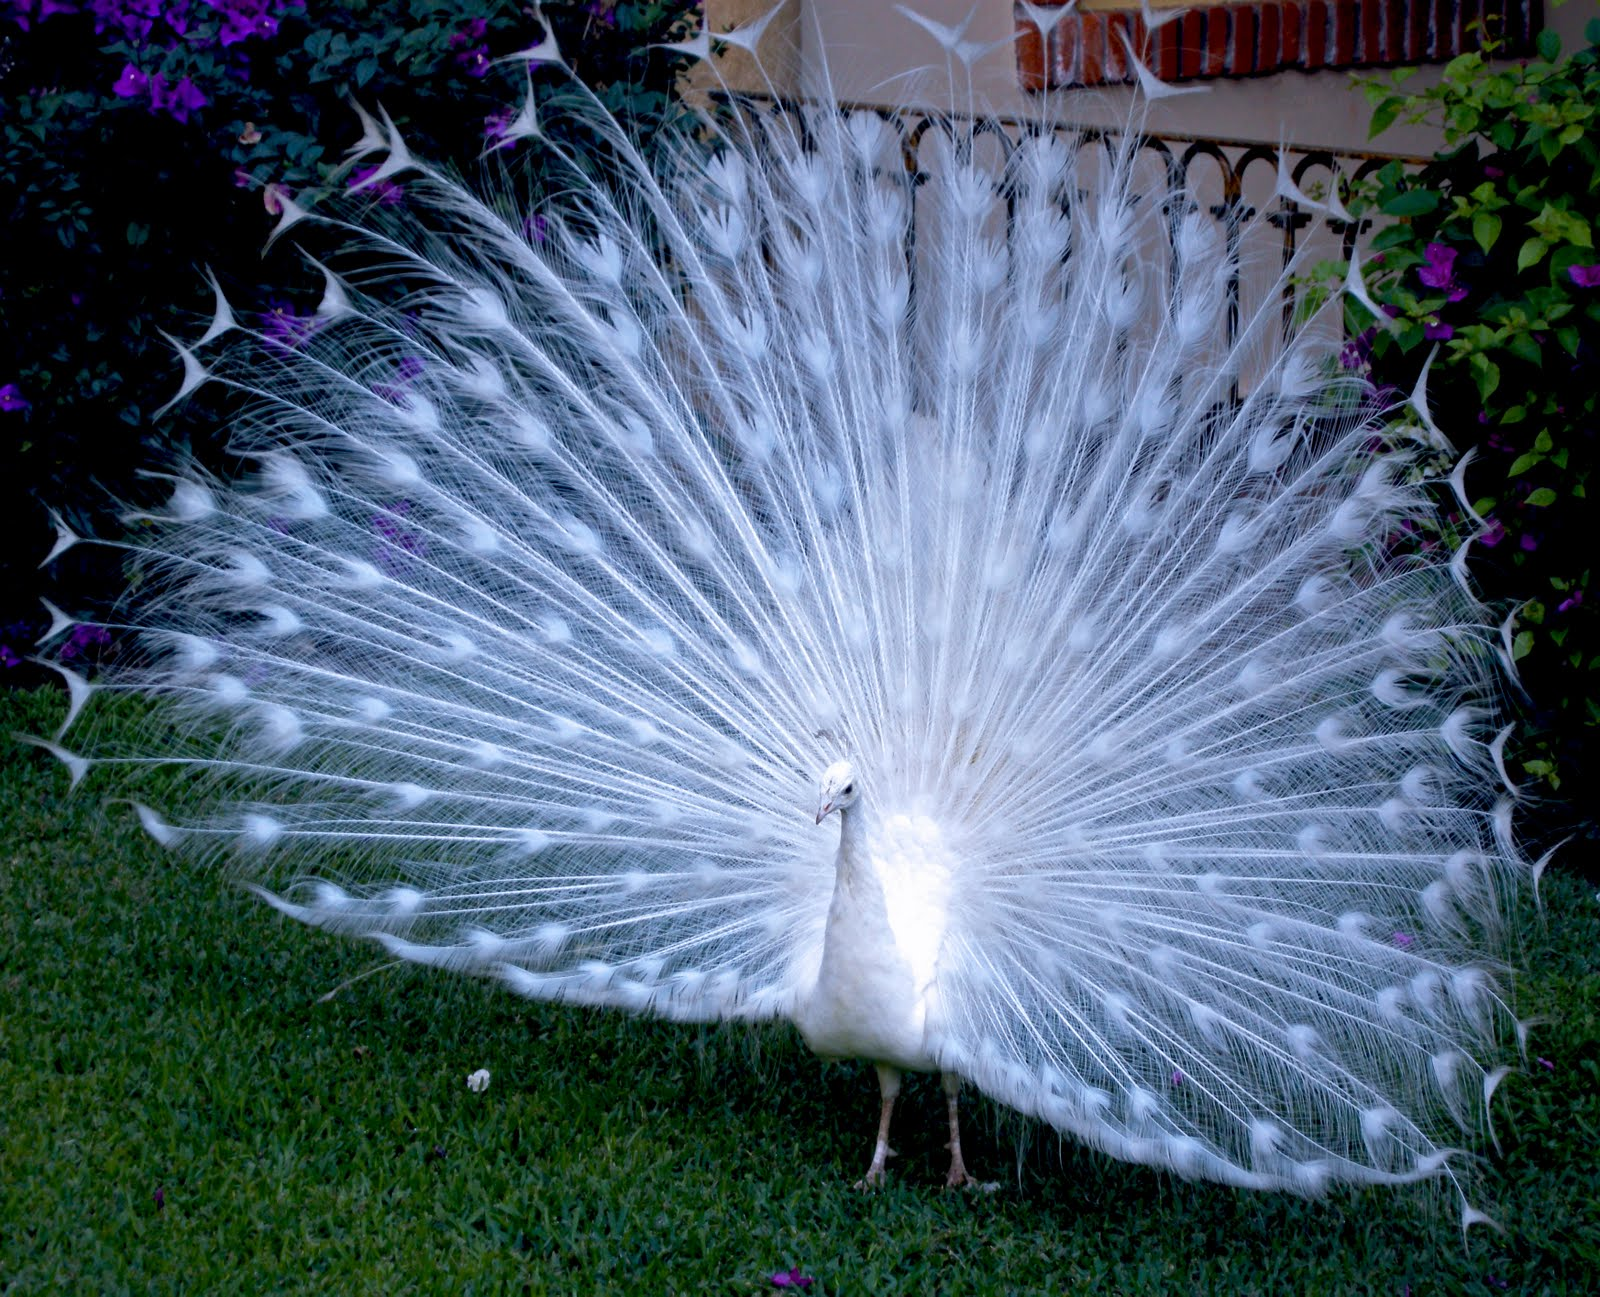 Albino Peacock or White Peacock